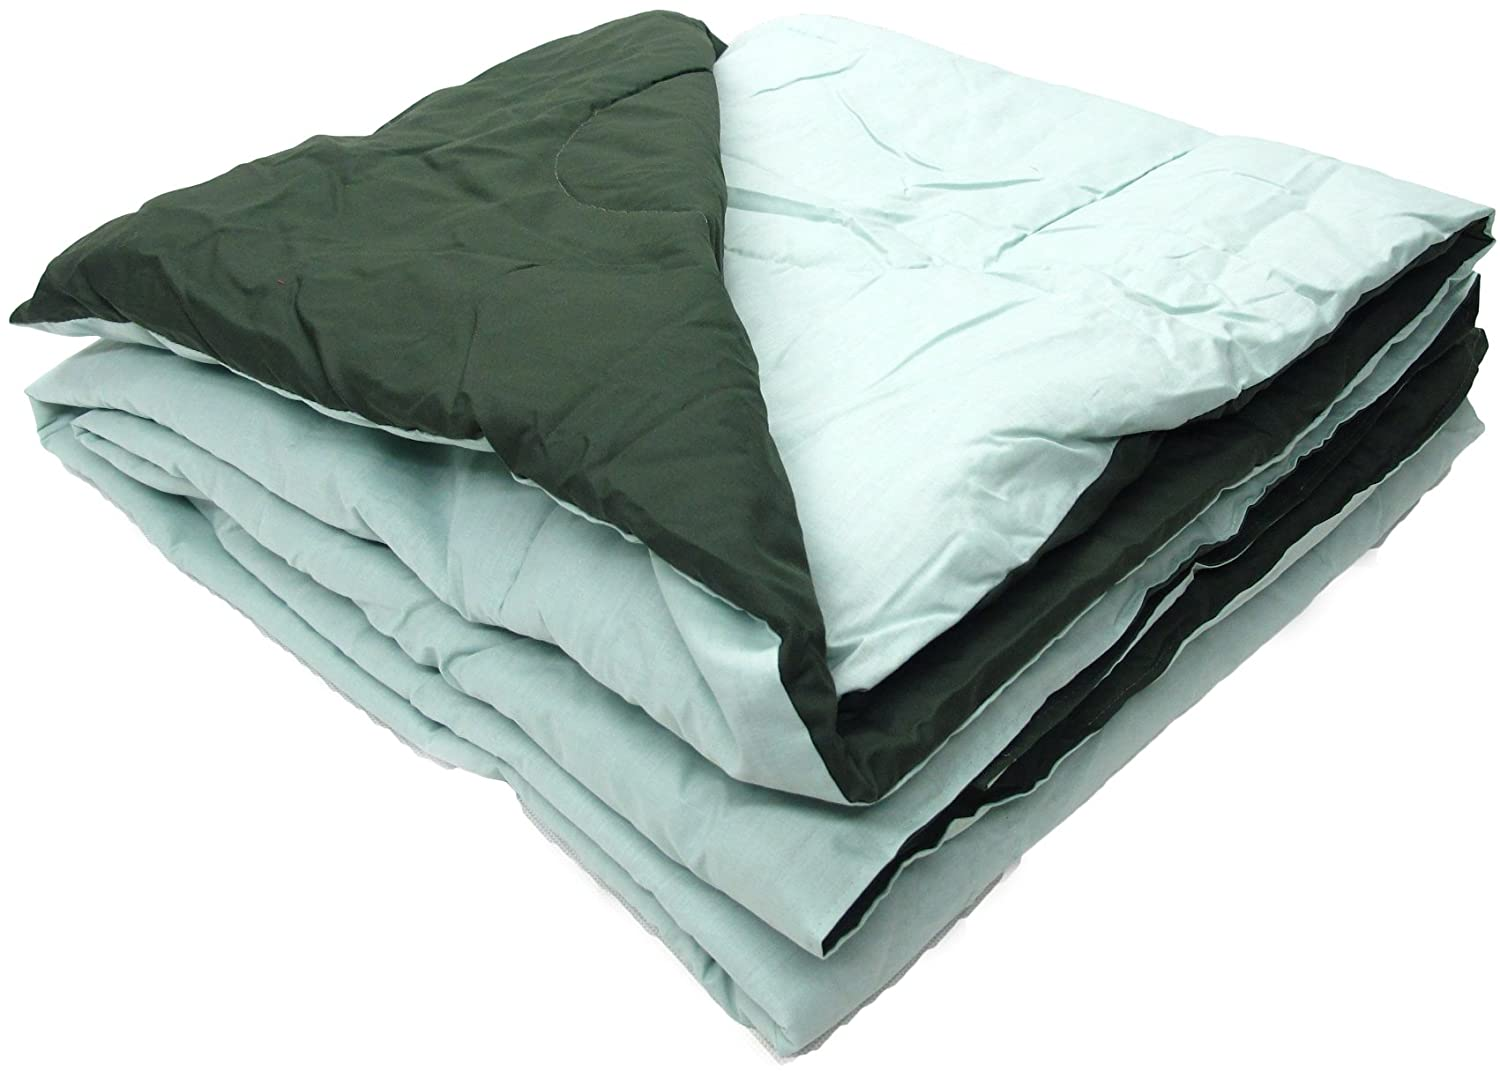 Percale Covered Comforter, Twin Size, Hunter Green - Seafoam Reversible. Non-Allergenic, Great For Camp